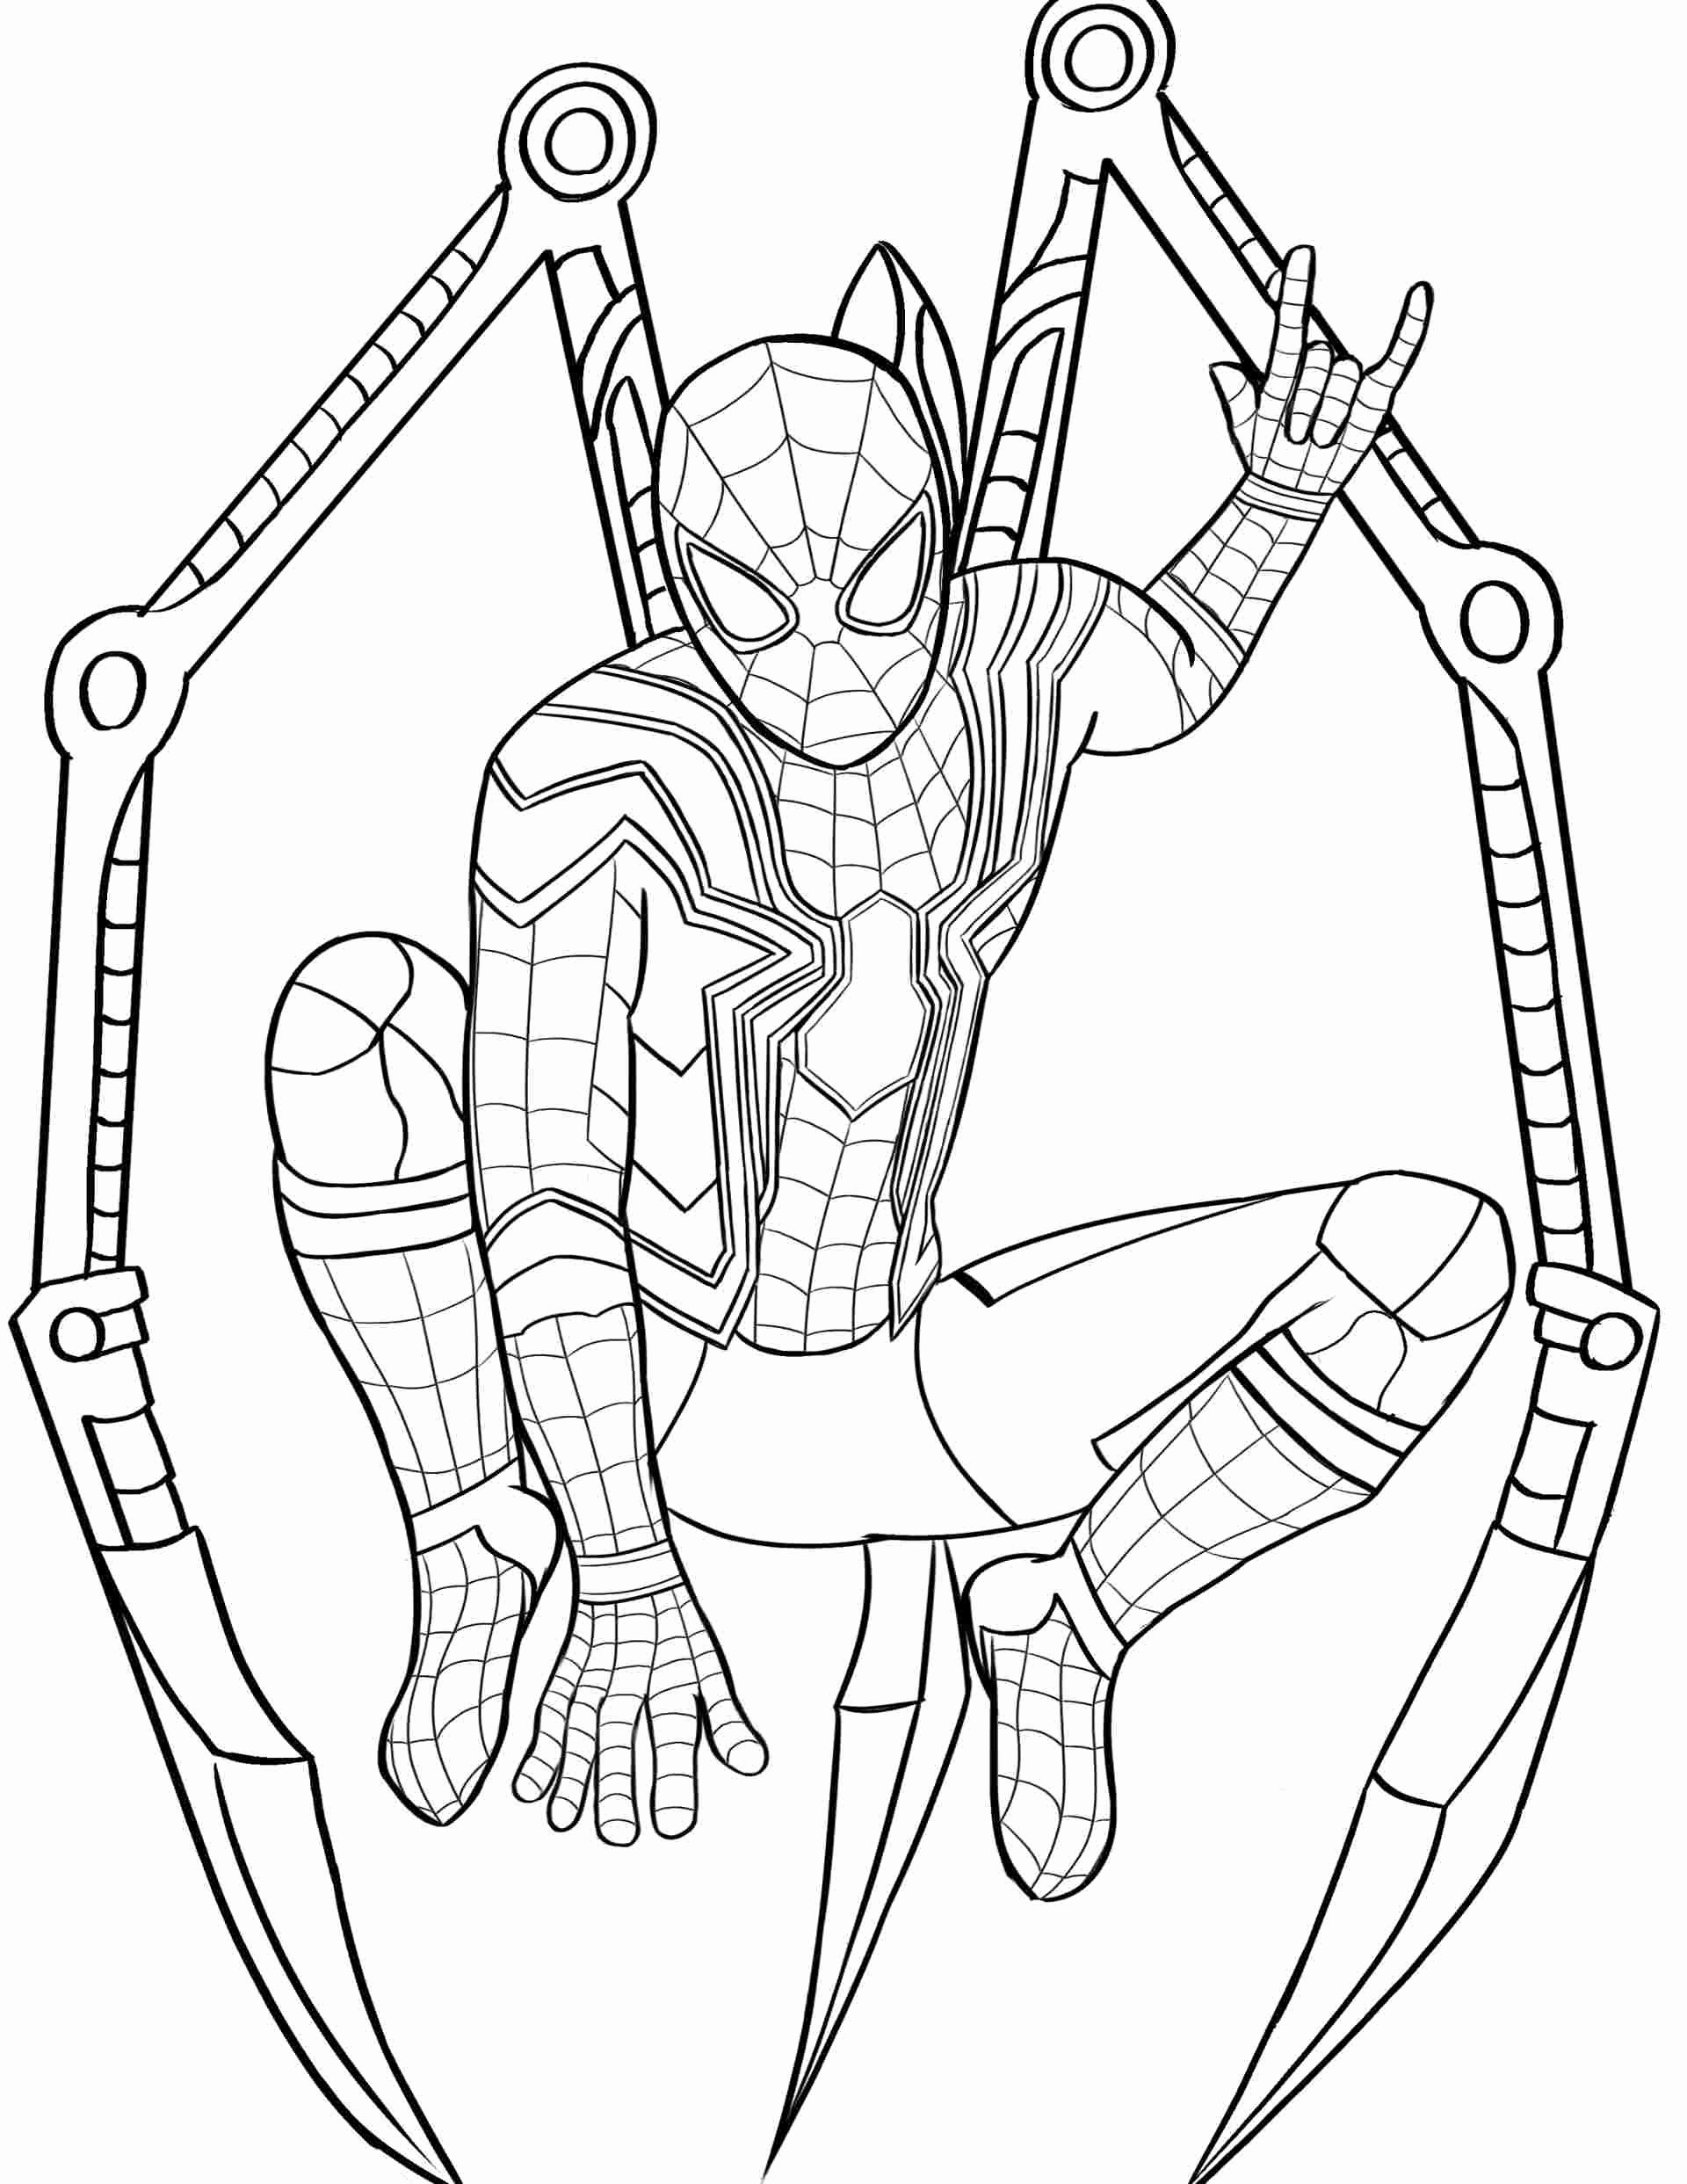 Avengers Miles Morales Spiderman Coloring Pages For Kids Spider Coloring Page Avengers Coloring Superhero Coloring Pages